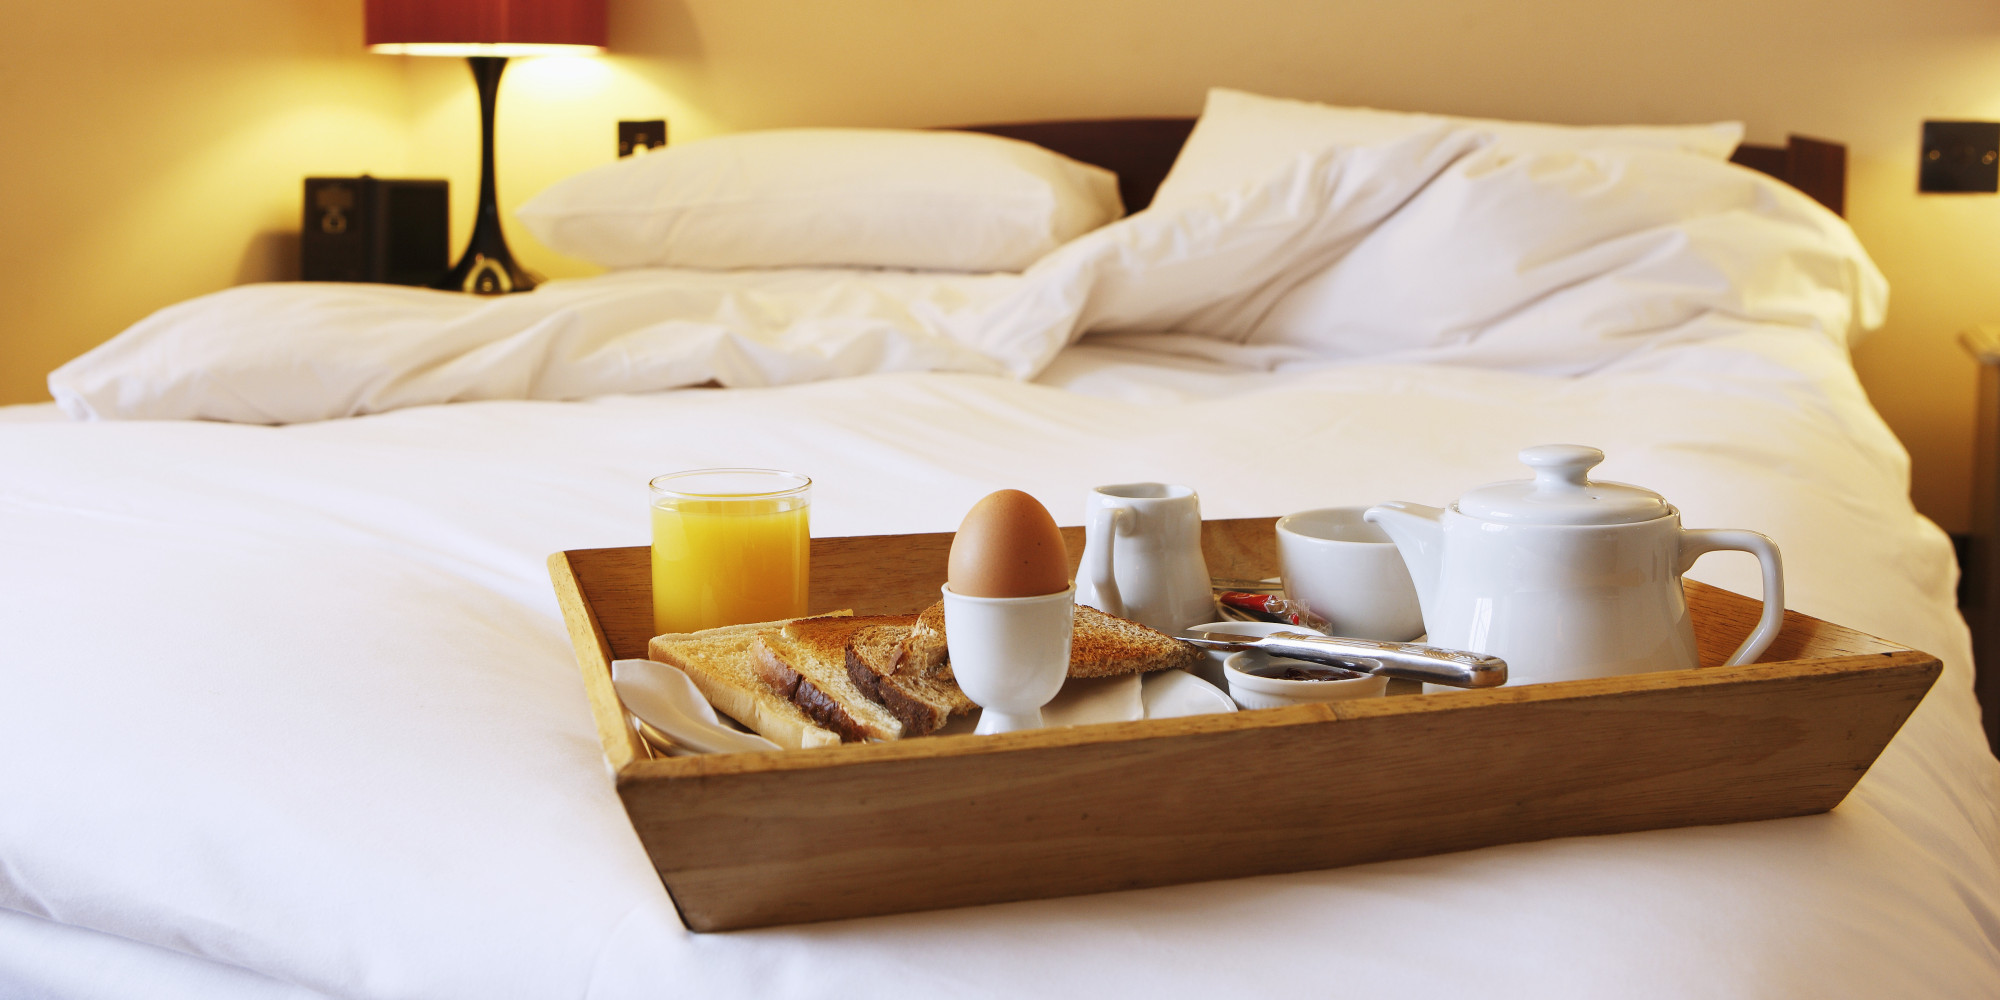 5 Room Service Secrets From Top US Hotels  HuffPost